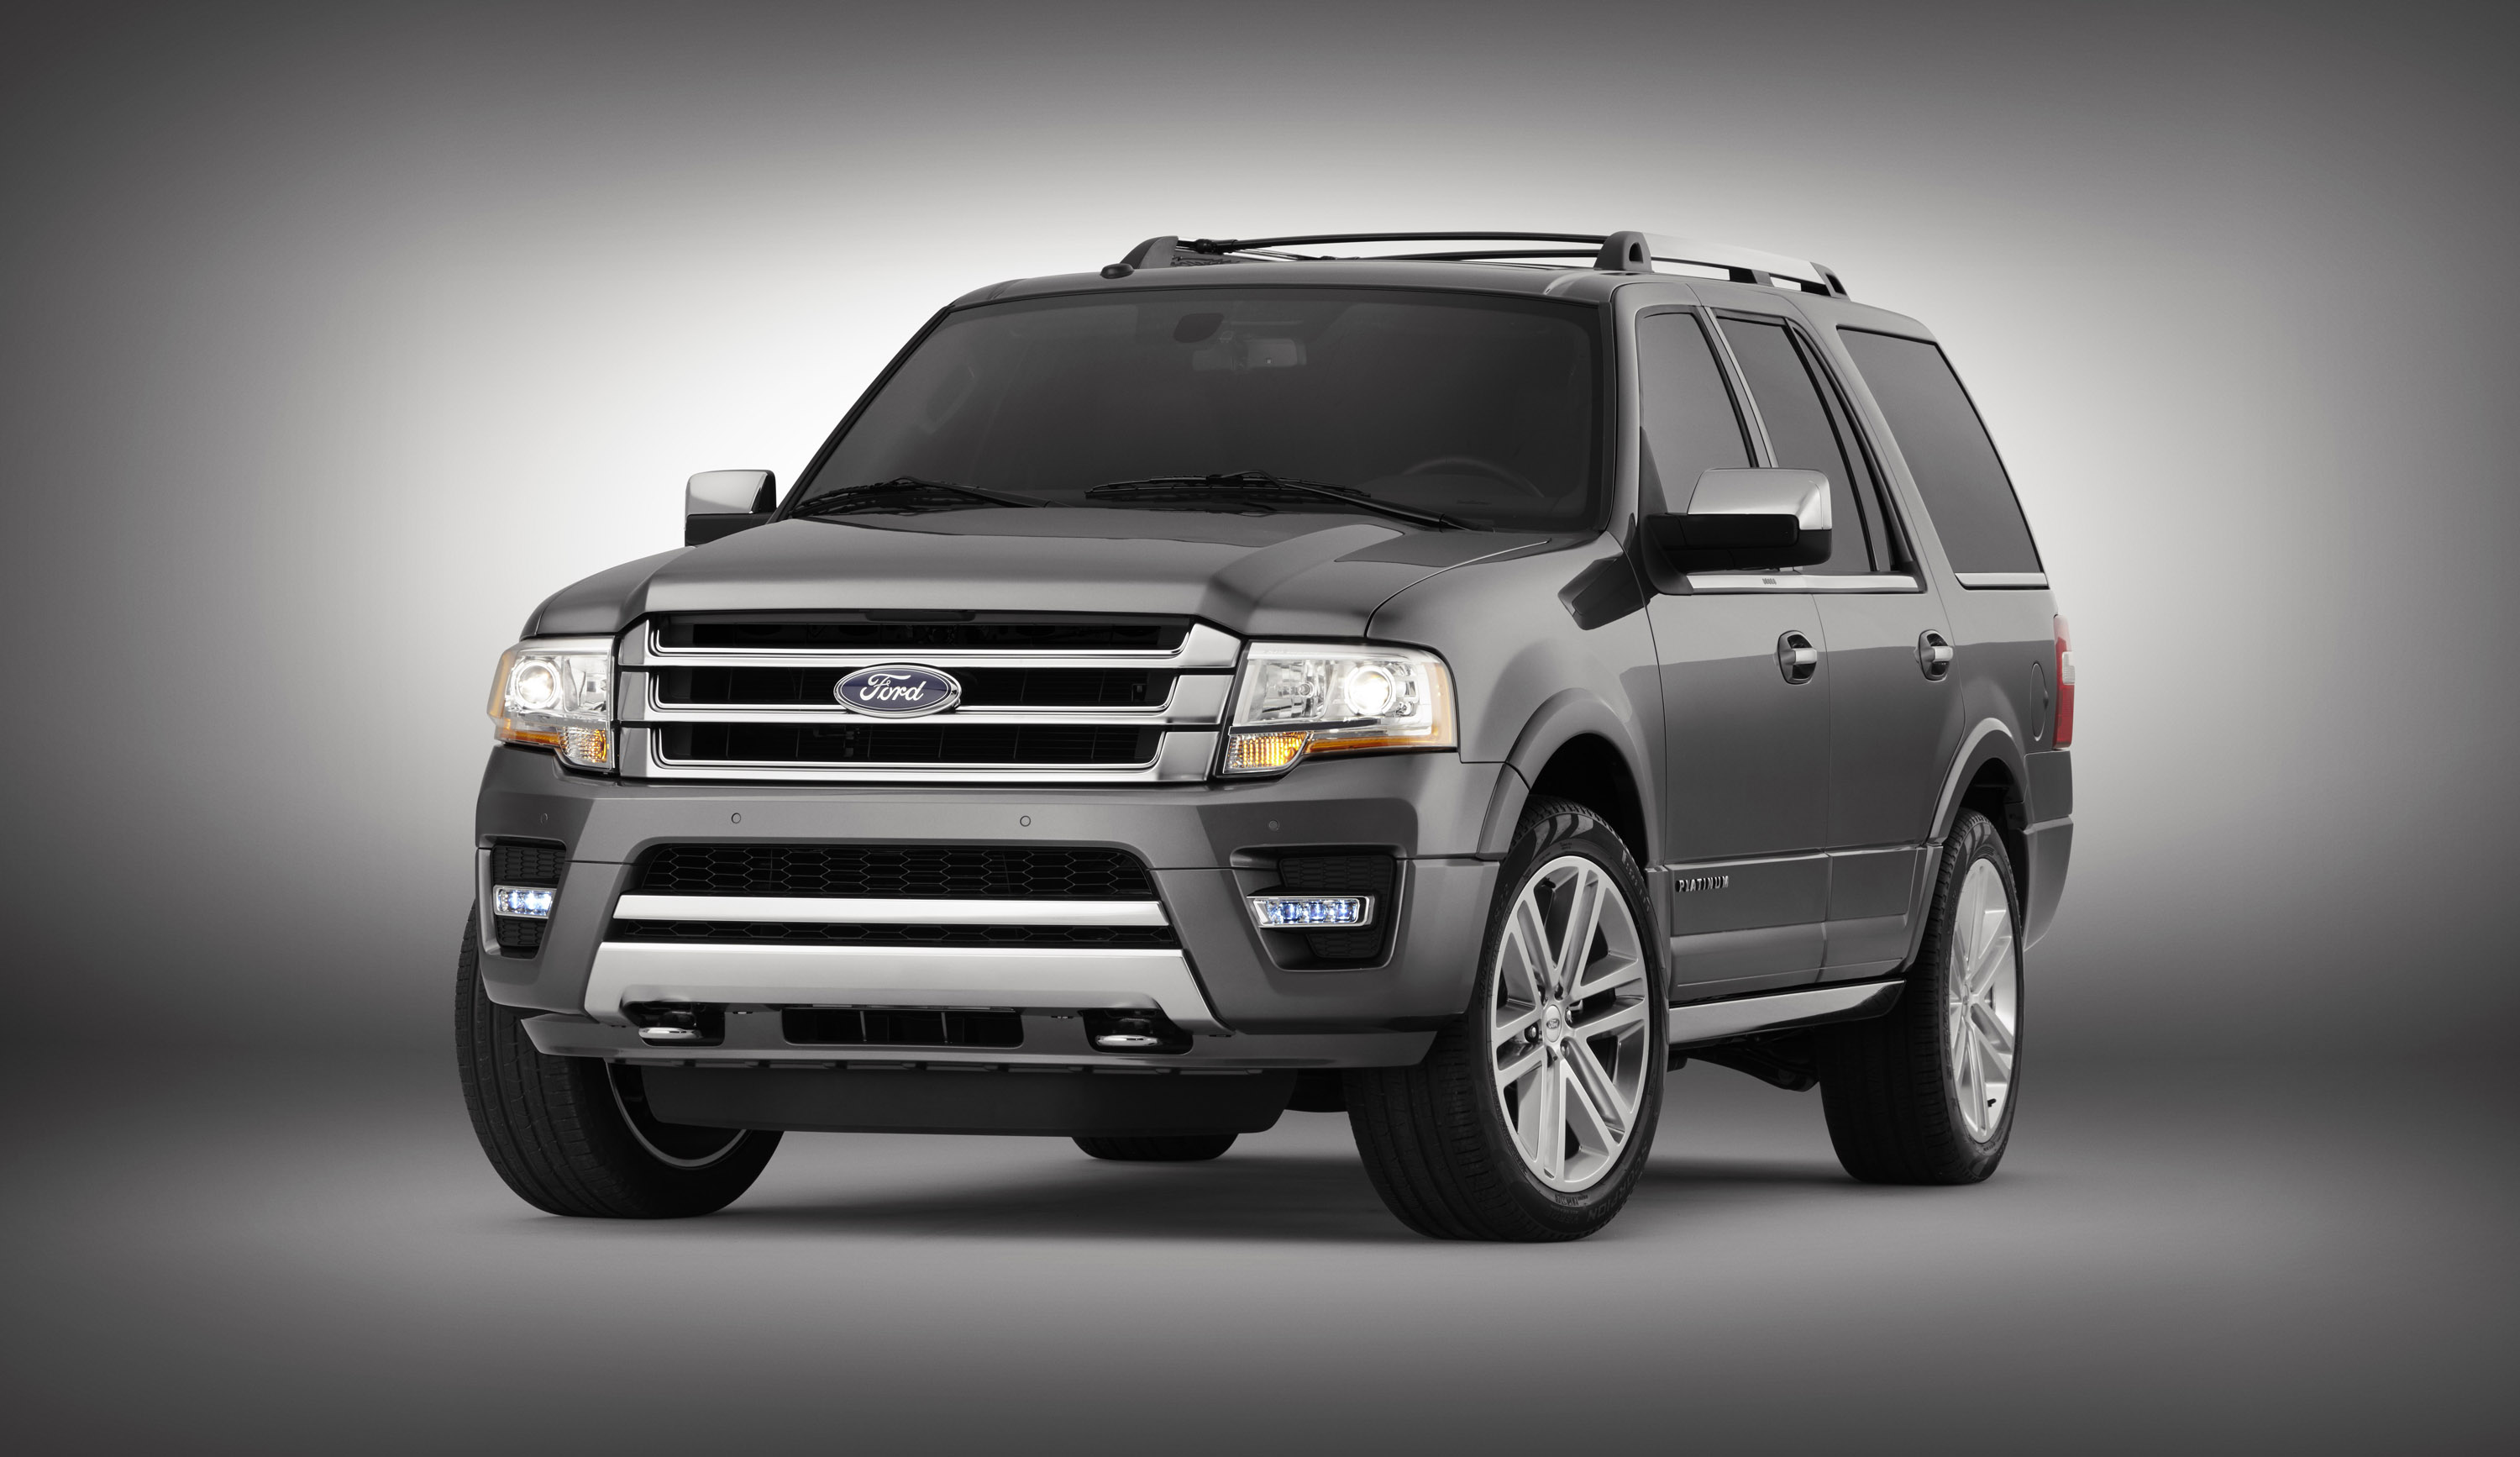 Ford Expedition photo #1